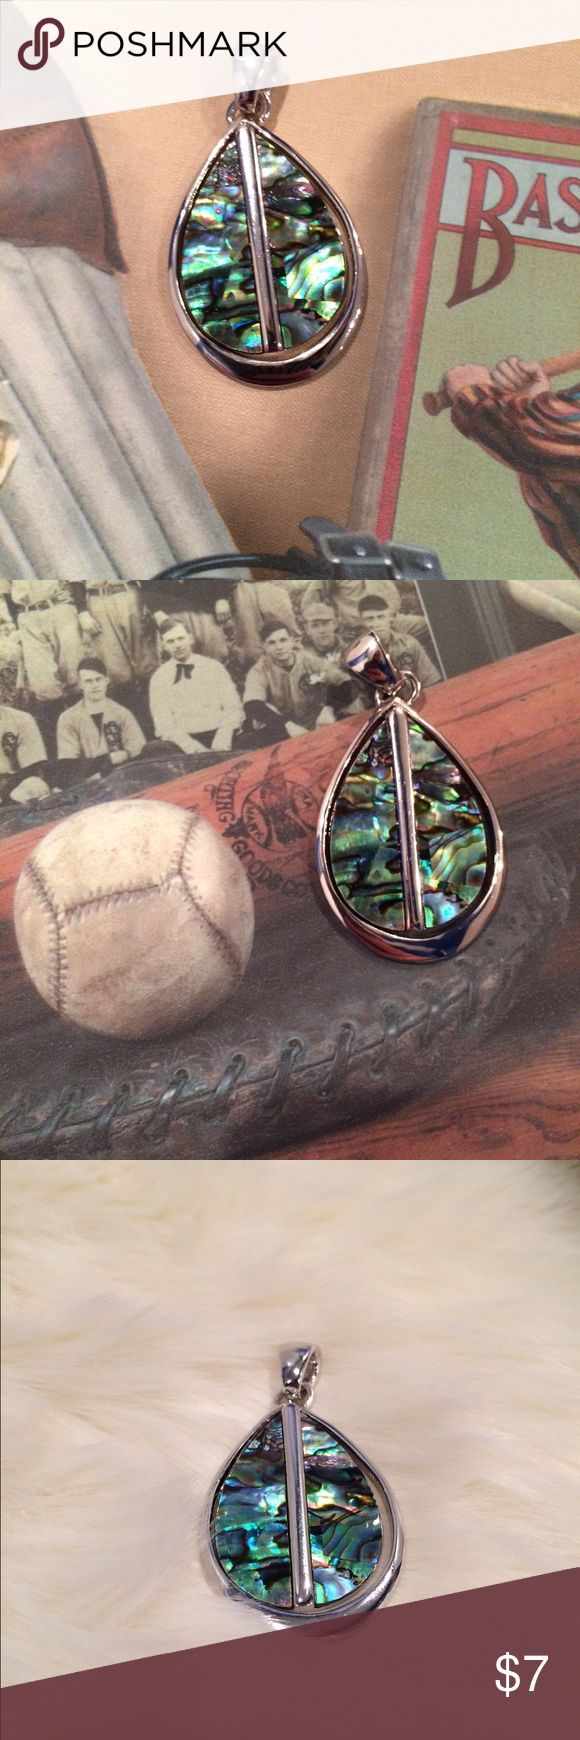 """Lia Sophia Abalone Slide GUC, minimal scratches on back due to general use. Approximately 2"""" in length. No designer stamp. 🚫NO OFFERS 💰I offer a 10% bundle discount on 3 or more items. Lia Sophia Jewelry"""